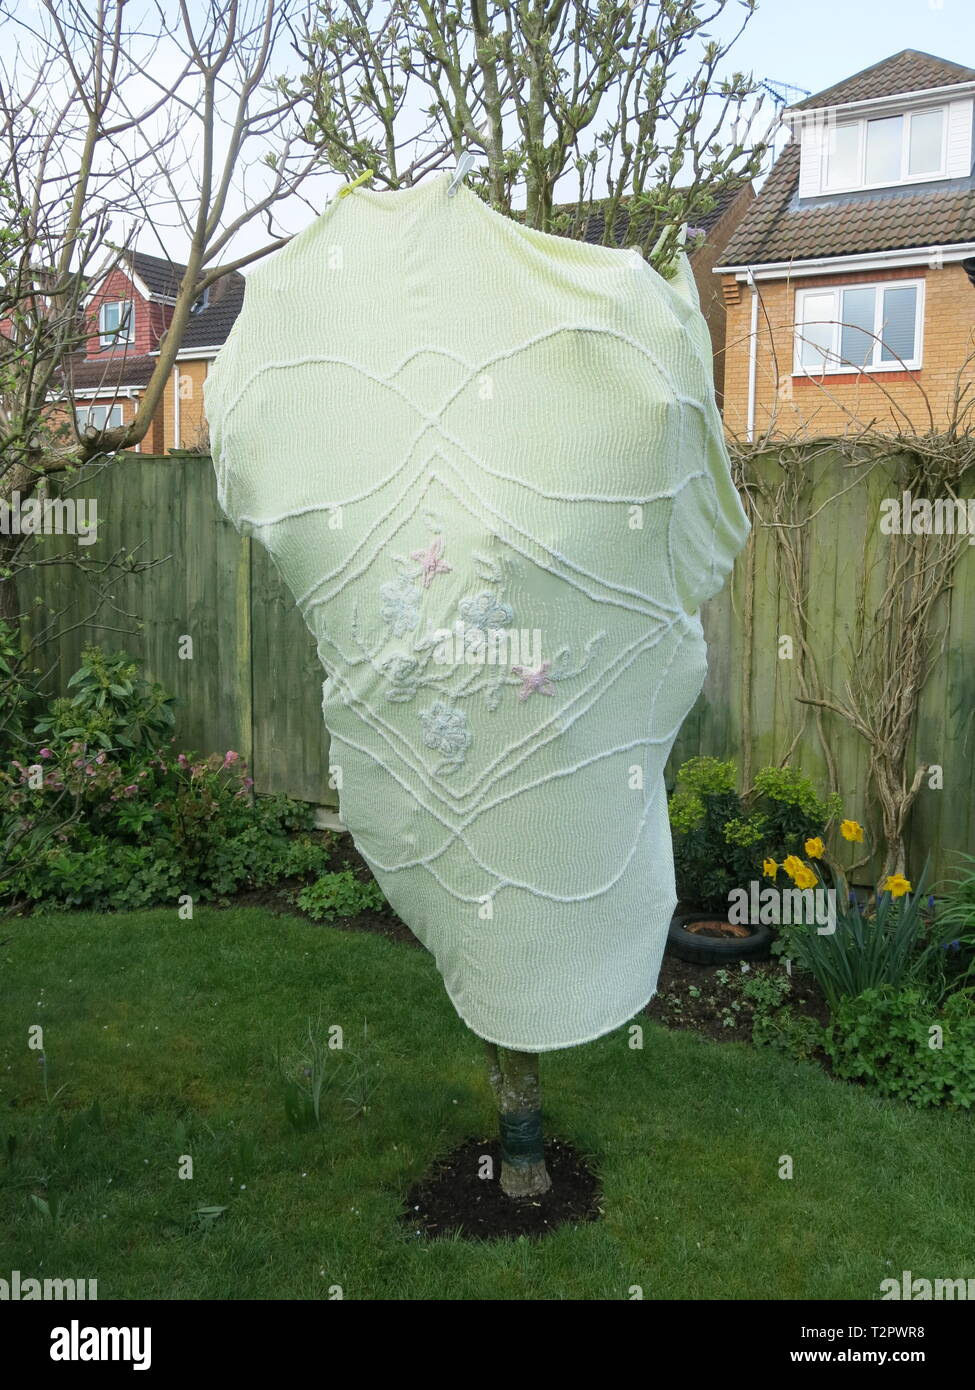 An old embroidered bedspread is recycled to wrap round a fruit tree and creates a womanly outline; frost protection in an English garden, April 2019 - Stock Image